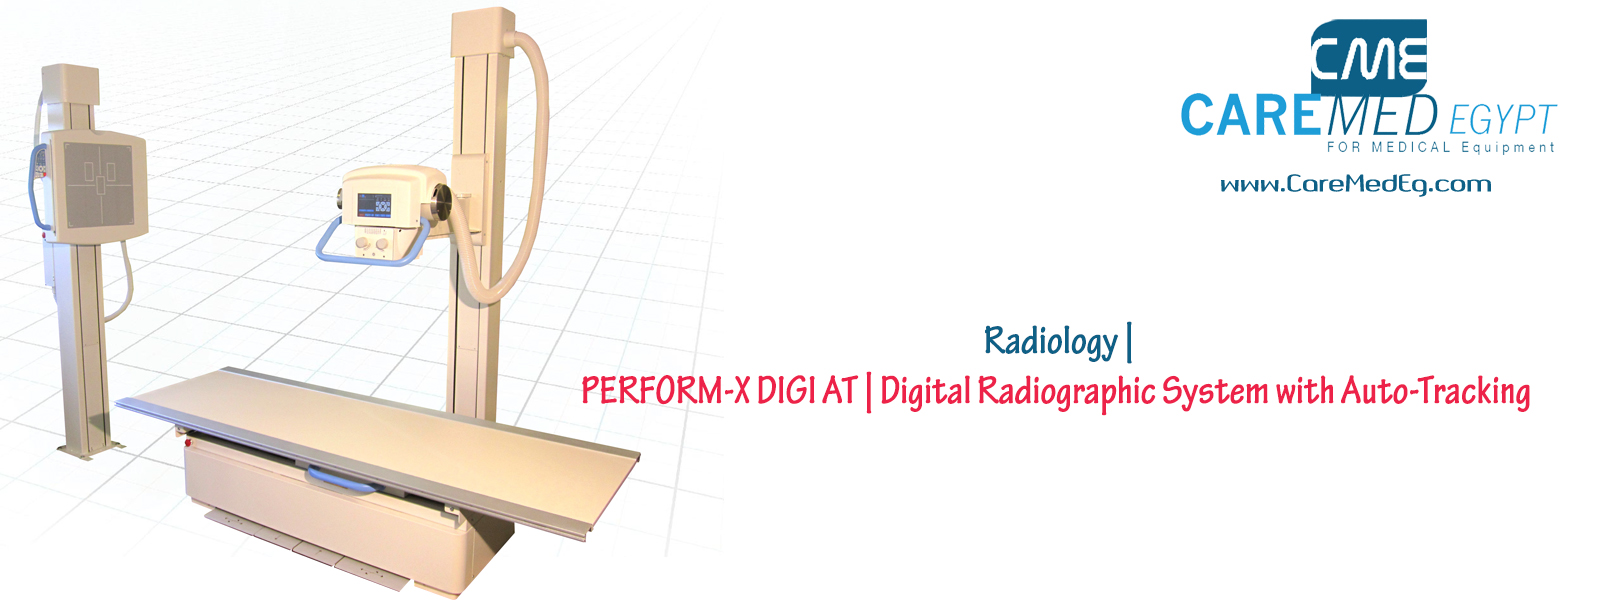 PERFORM-X DIGI AT   Digital Radiographic System with Auto-Tracking